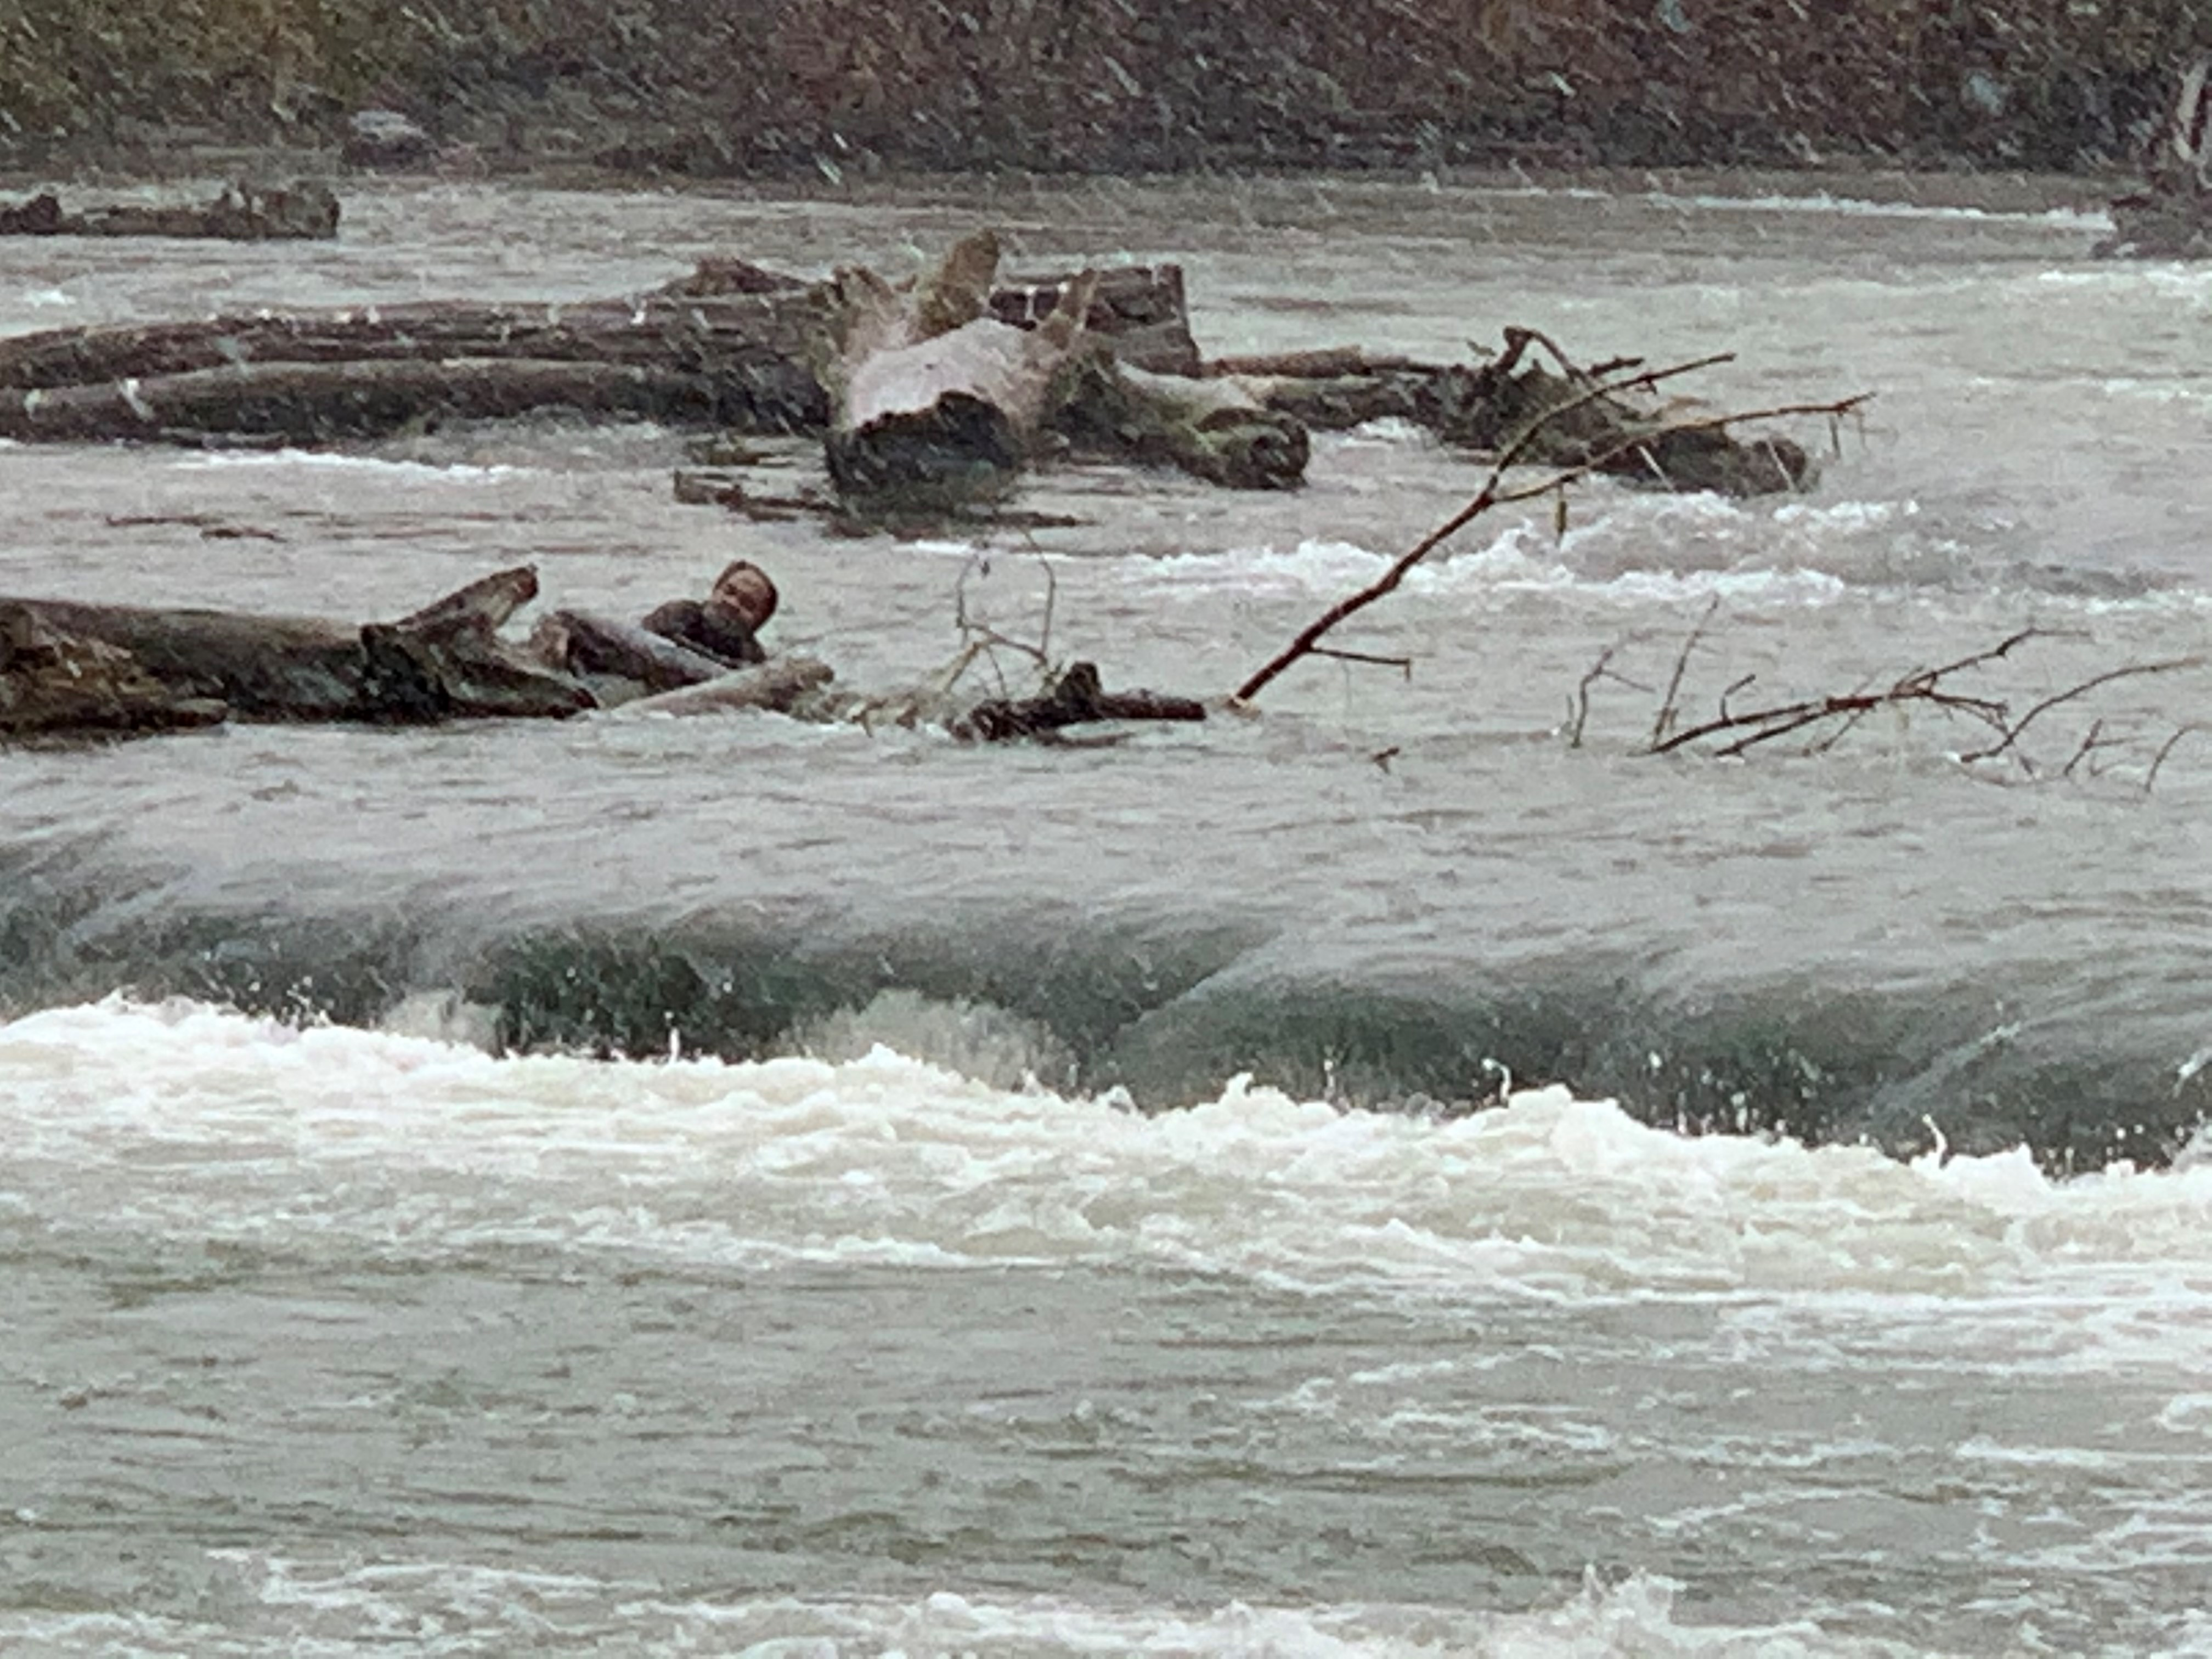 Man rescued from raging Niagara River